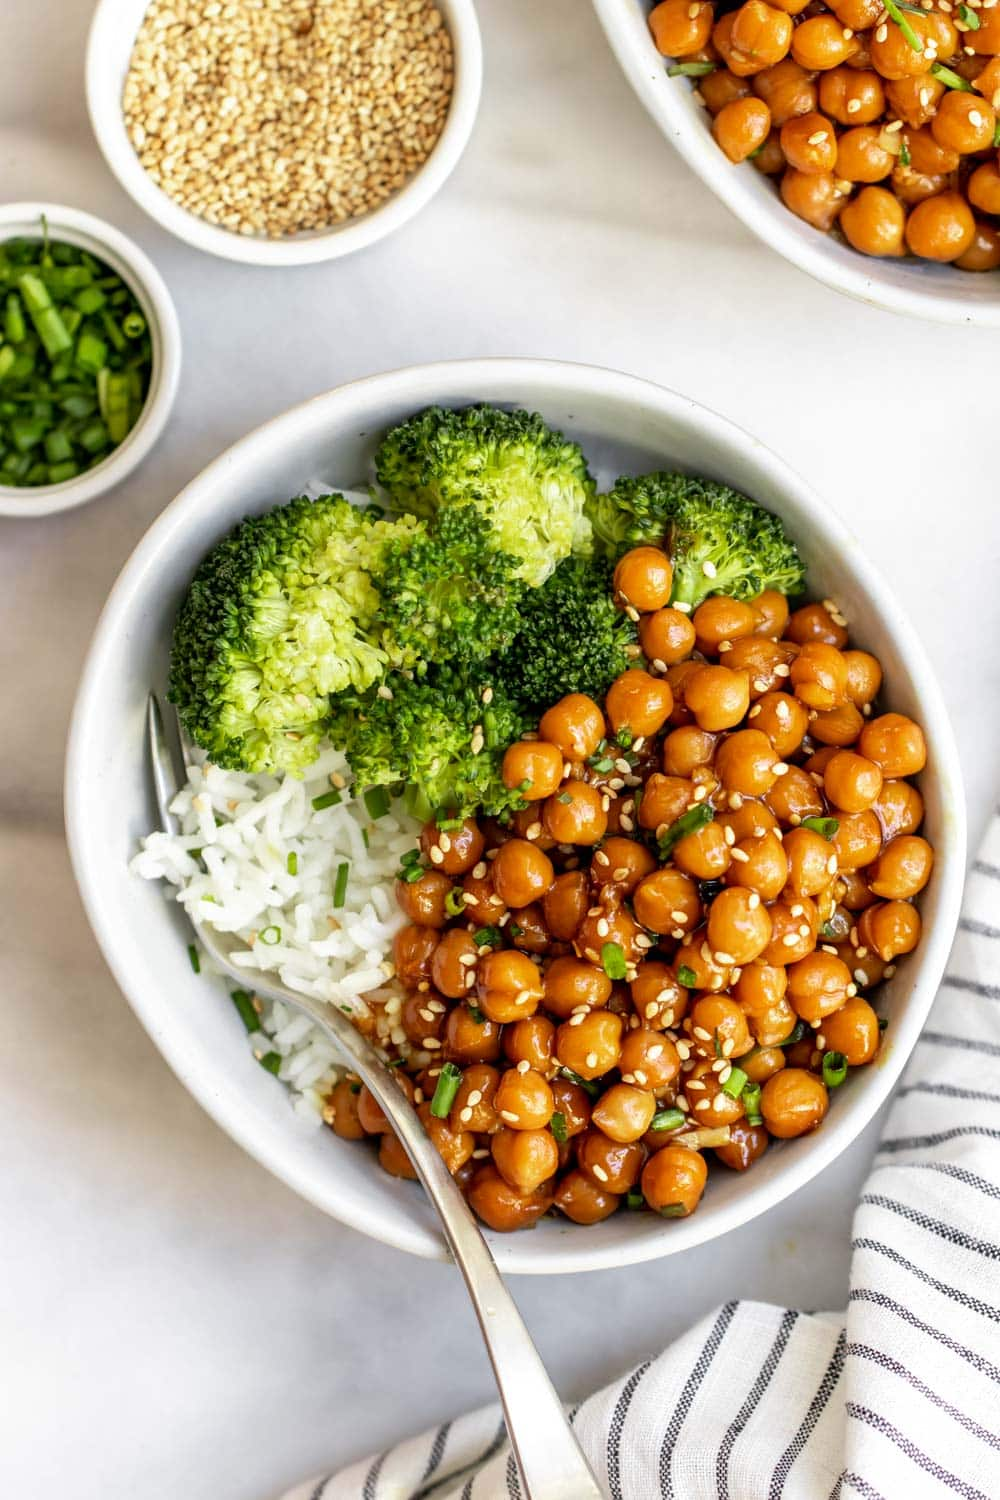 Vegan Sesame chickpeas with steamed broccoli and chives on top.